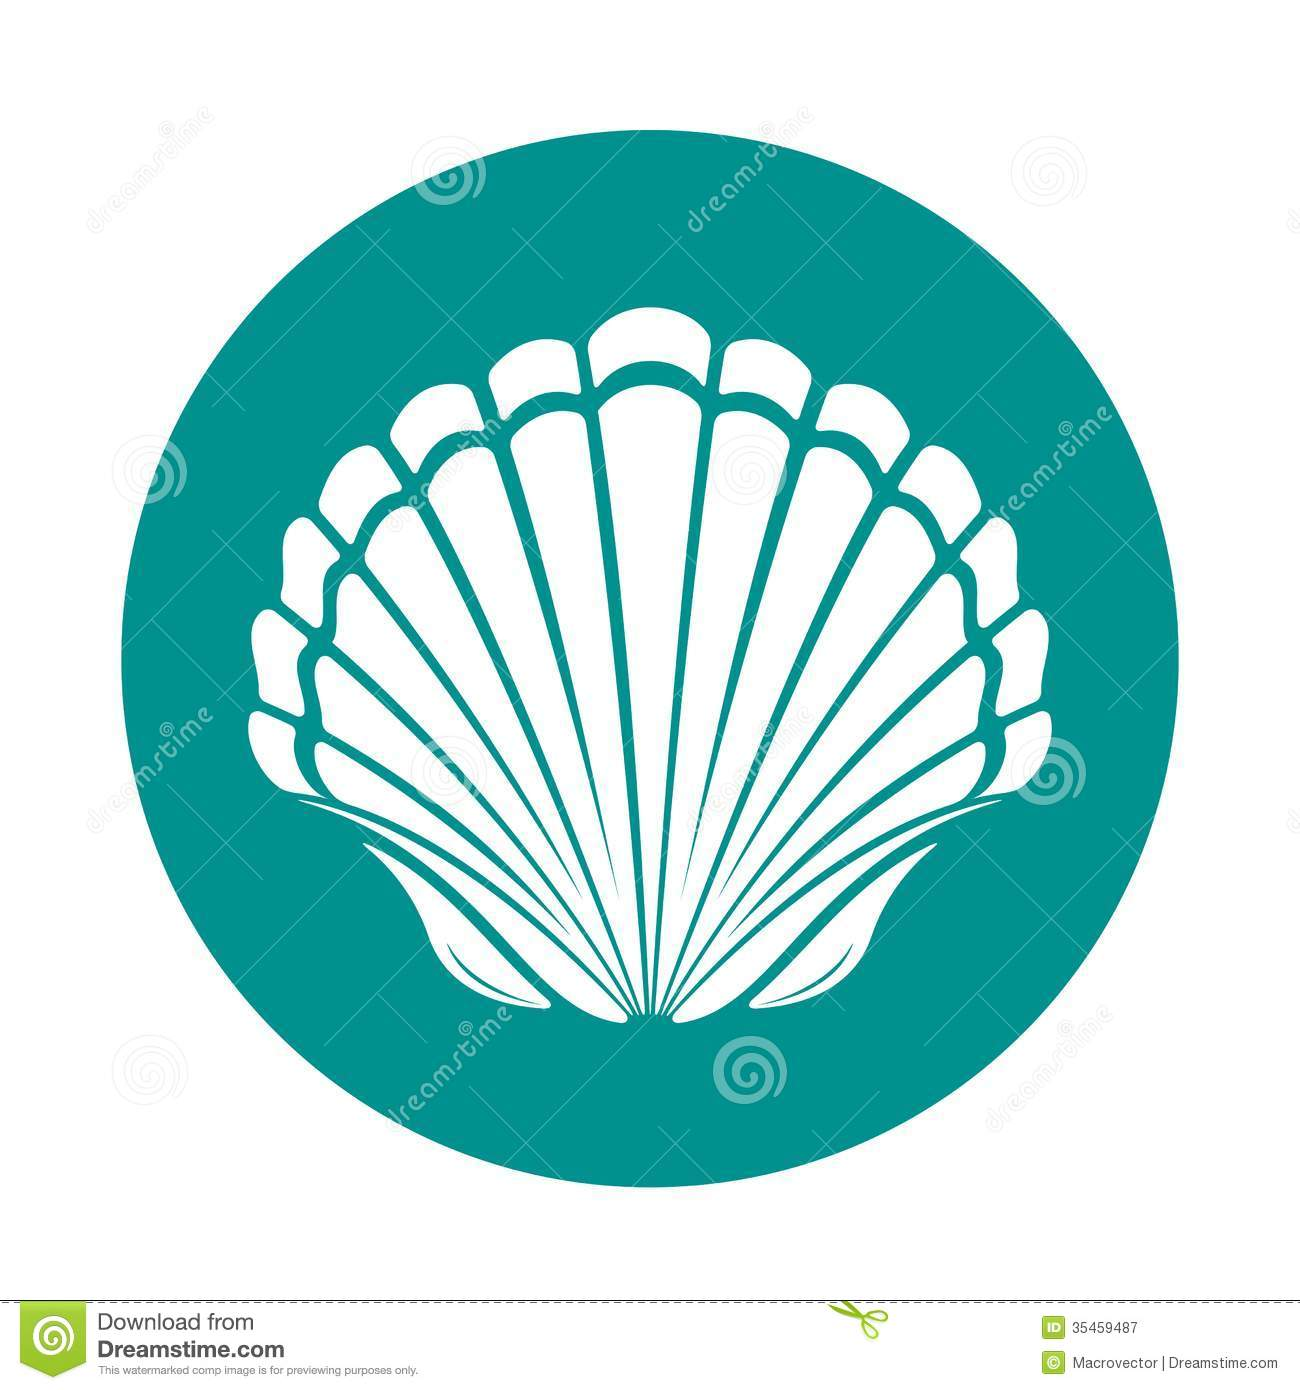 Scallop shell stock illustrations 3345 scallop shell stock scallop sea shell symbol vector illustration royalty free stock photography biocorpaavc Image collections